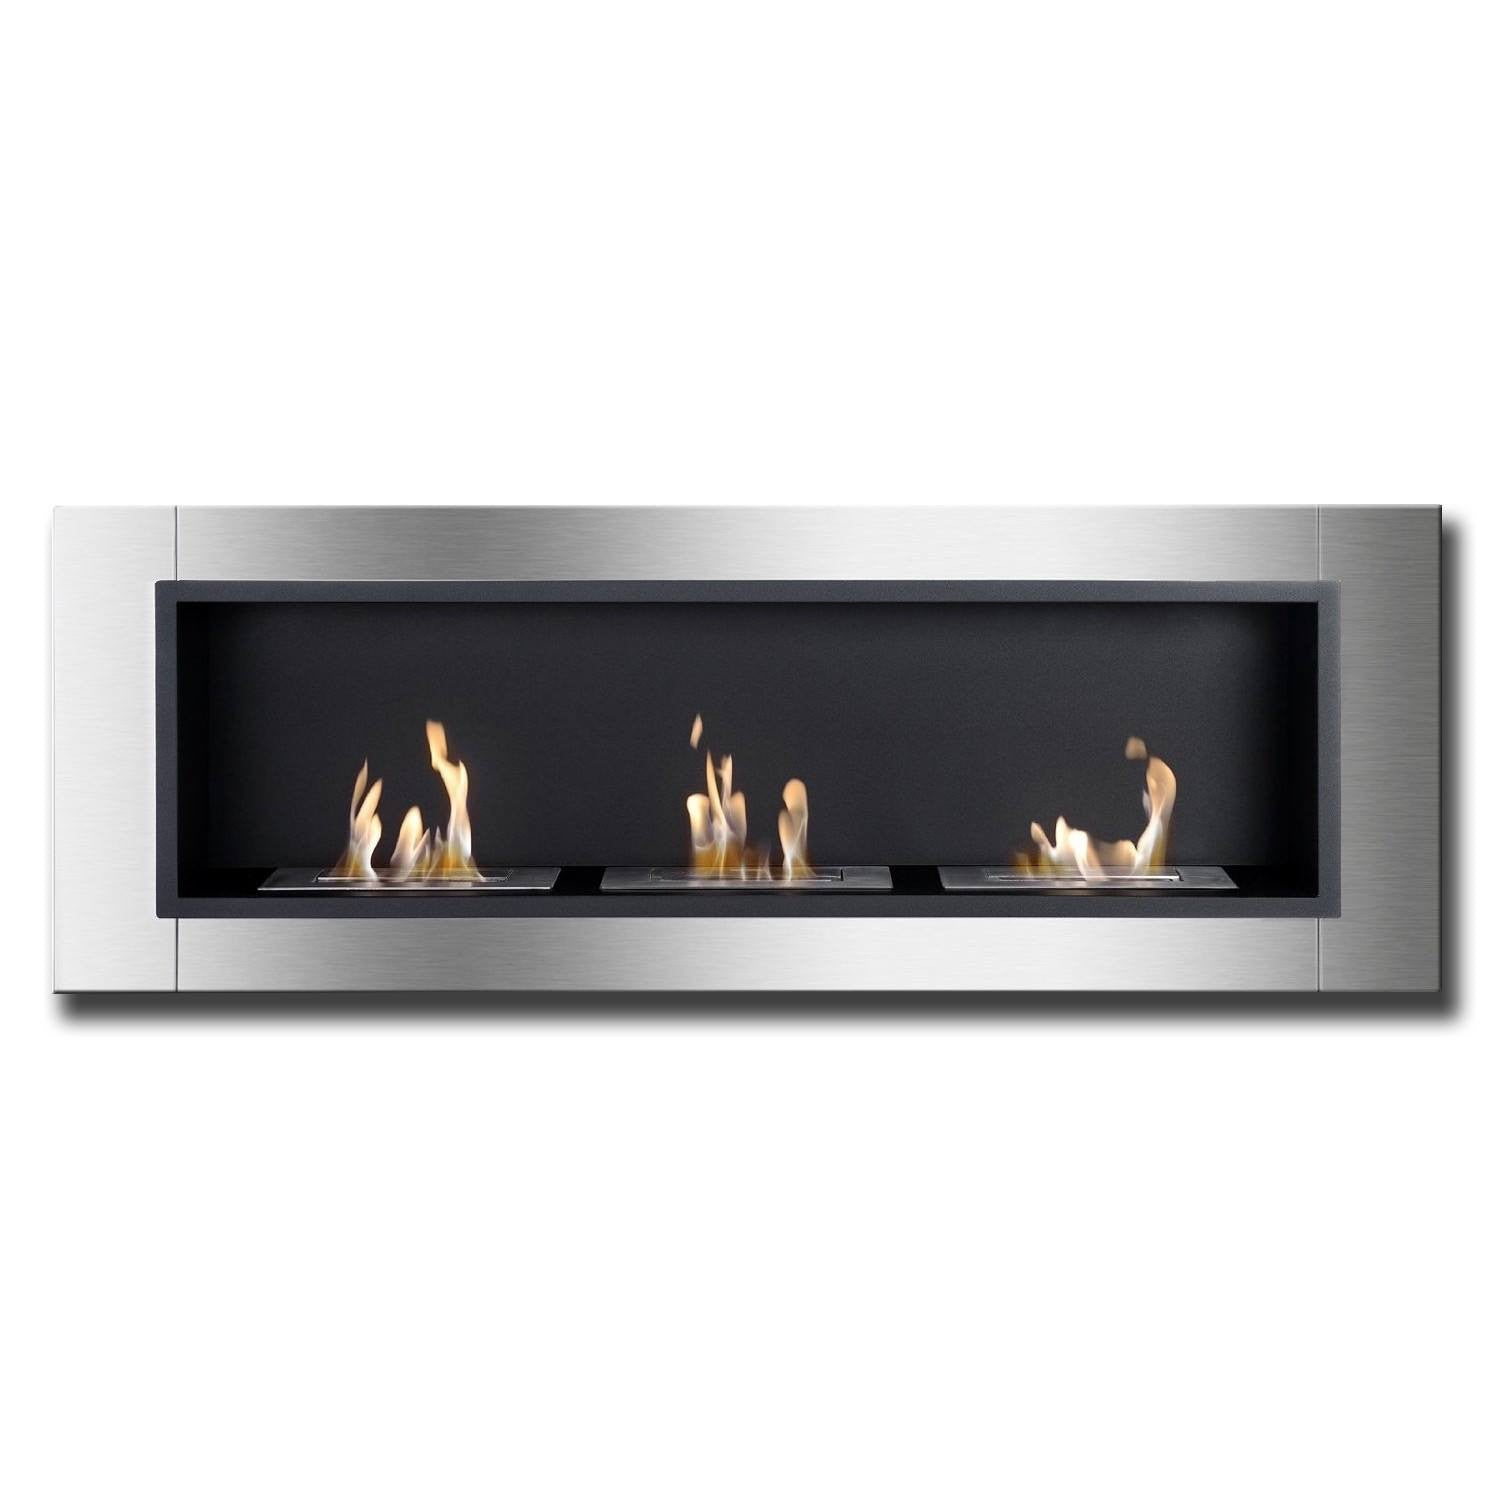 fireplace bent ibiza values modell product bio